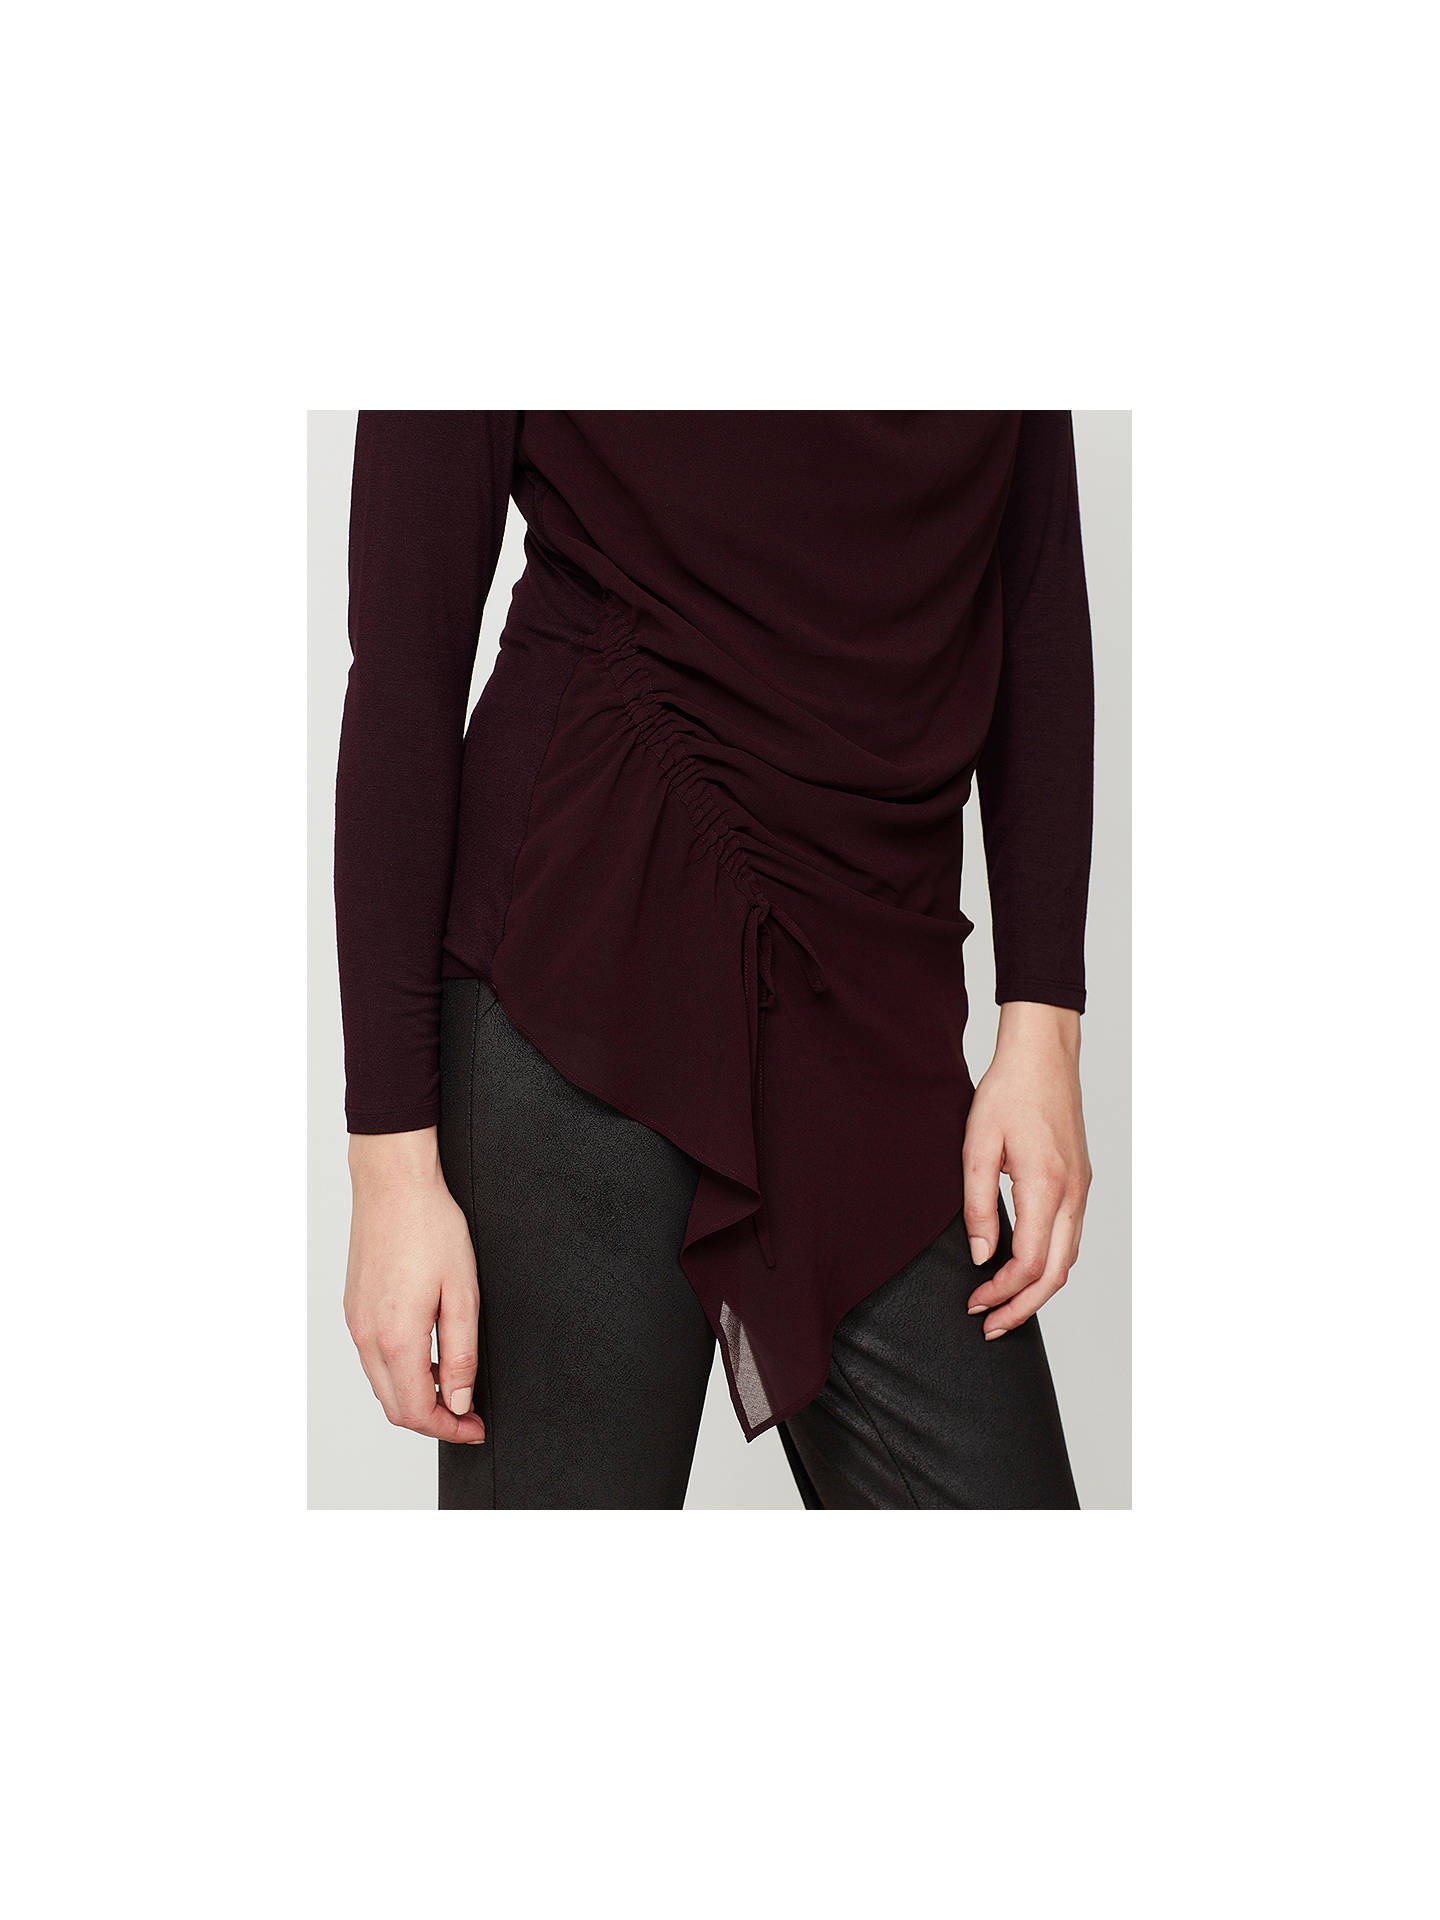 BuyMint Velvet Bordeaux Ruched Front Layer Top, Dark Red, 6 Online at johnlewis.com